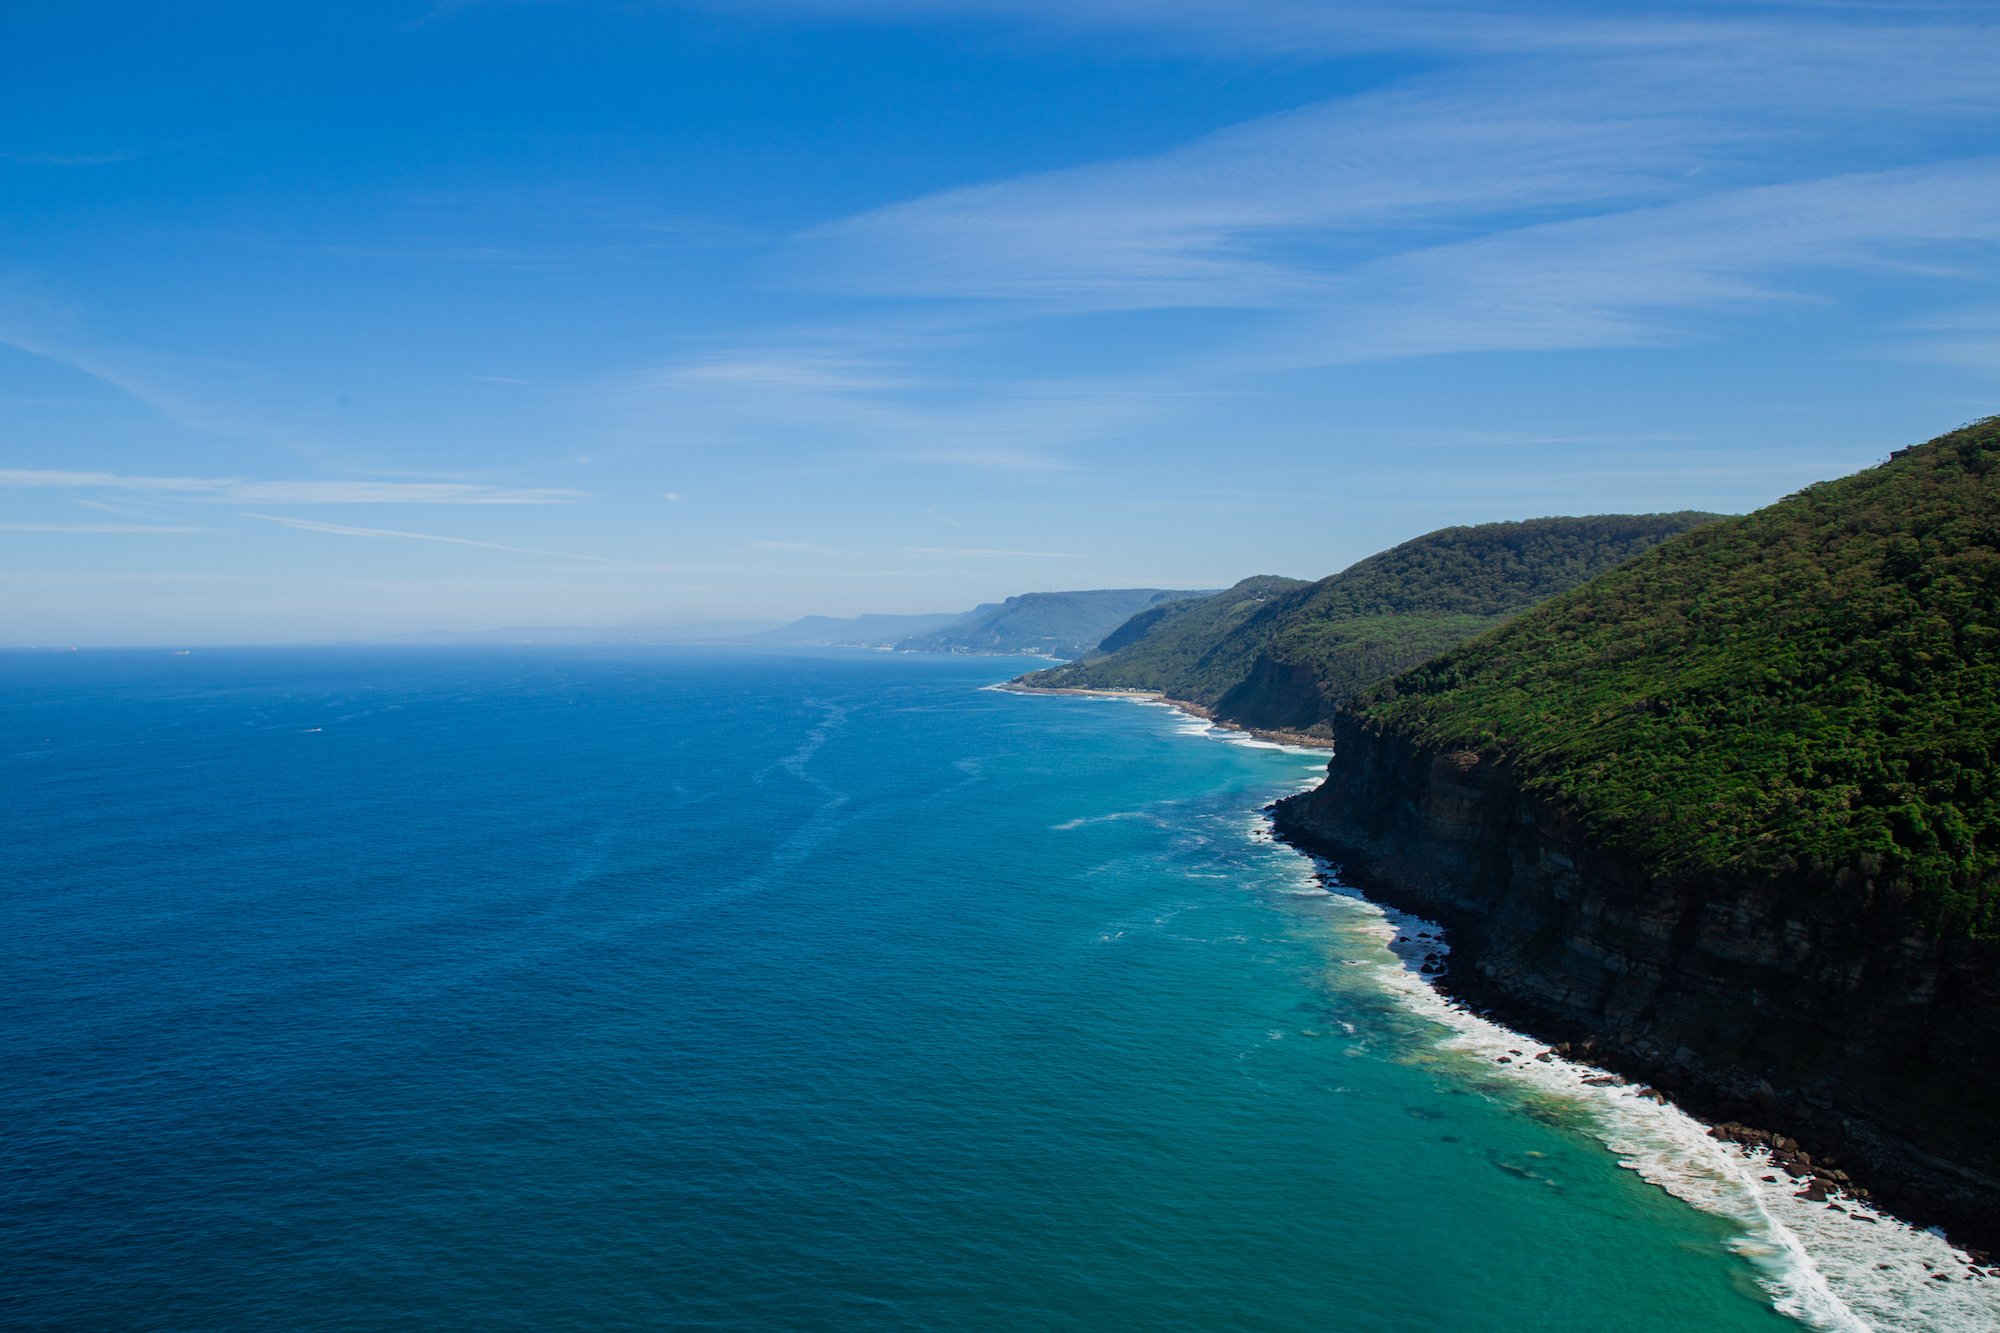 Royal National Park Coastline